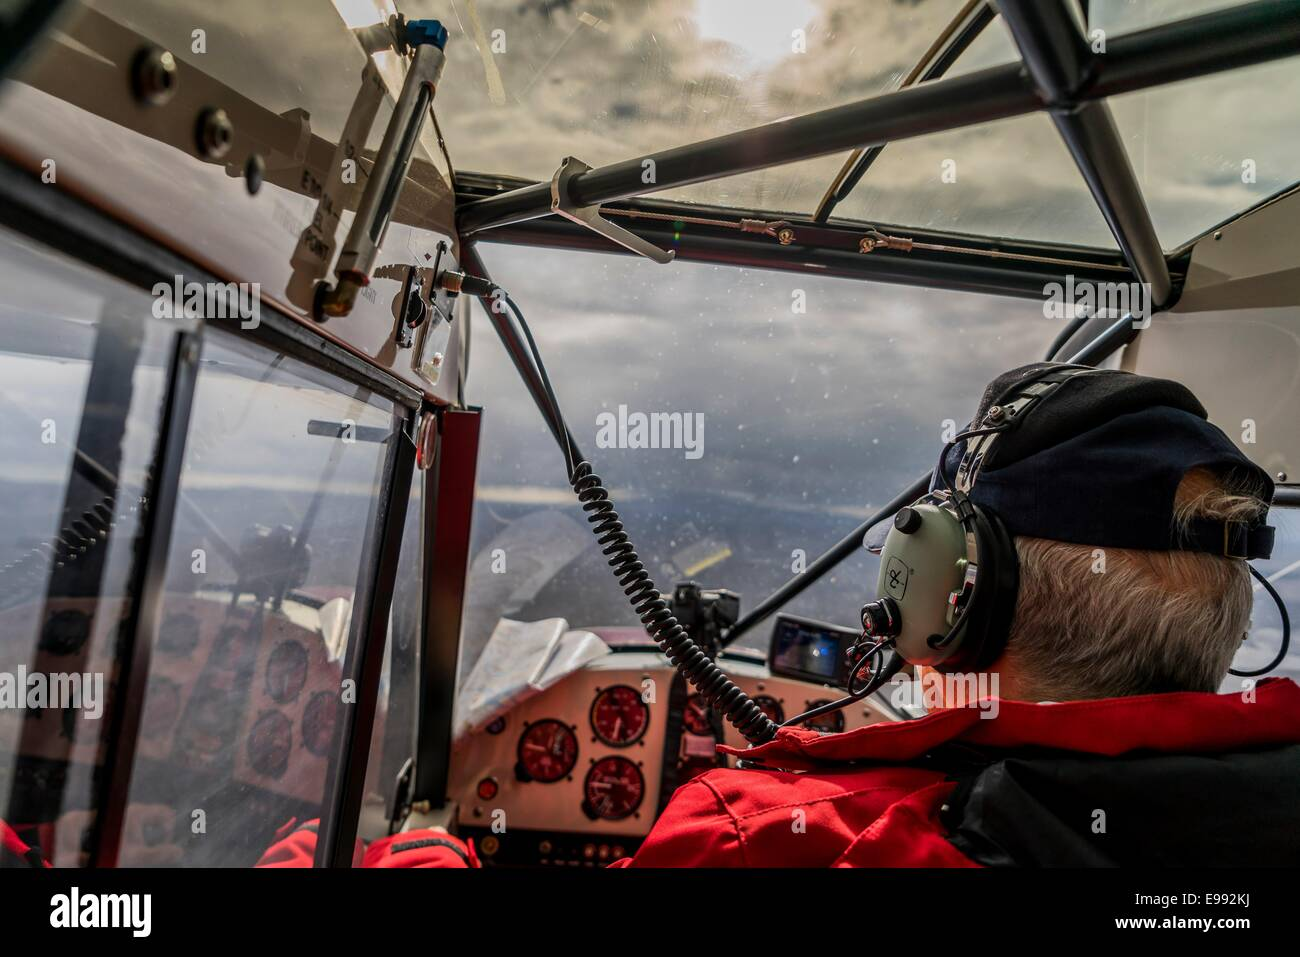 Pilot flying a Super Cub airplane by the Holuhraun Fissure Euruption, Iceland. - Stock Image